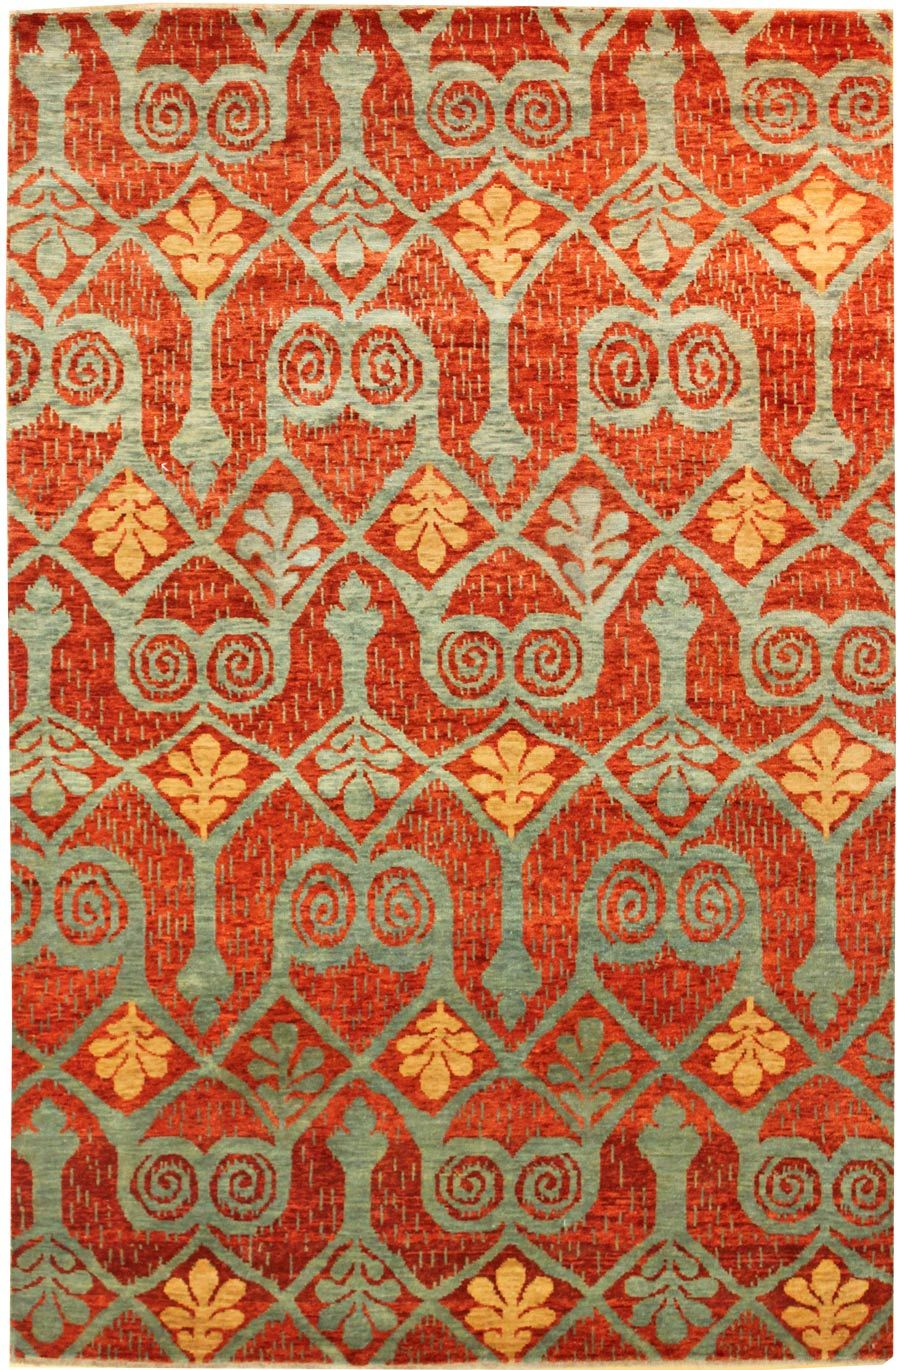 Suzani Ikat Designs Gallery Design Rug Hand Knptted In India